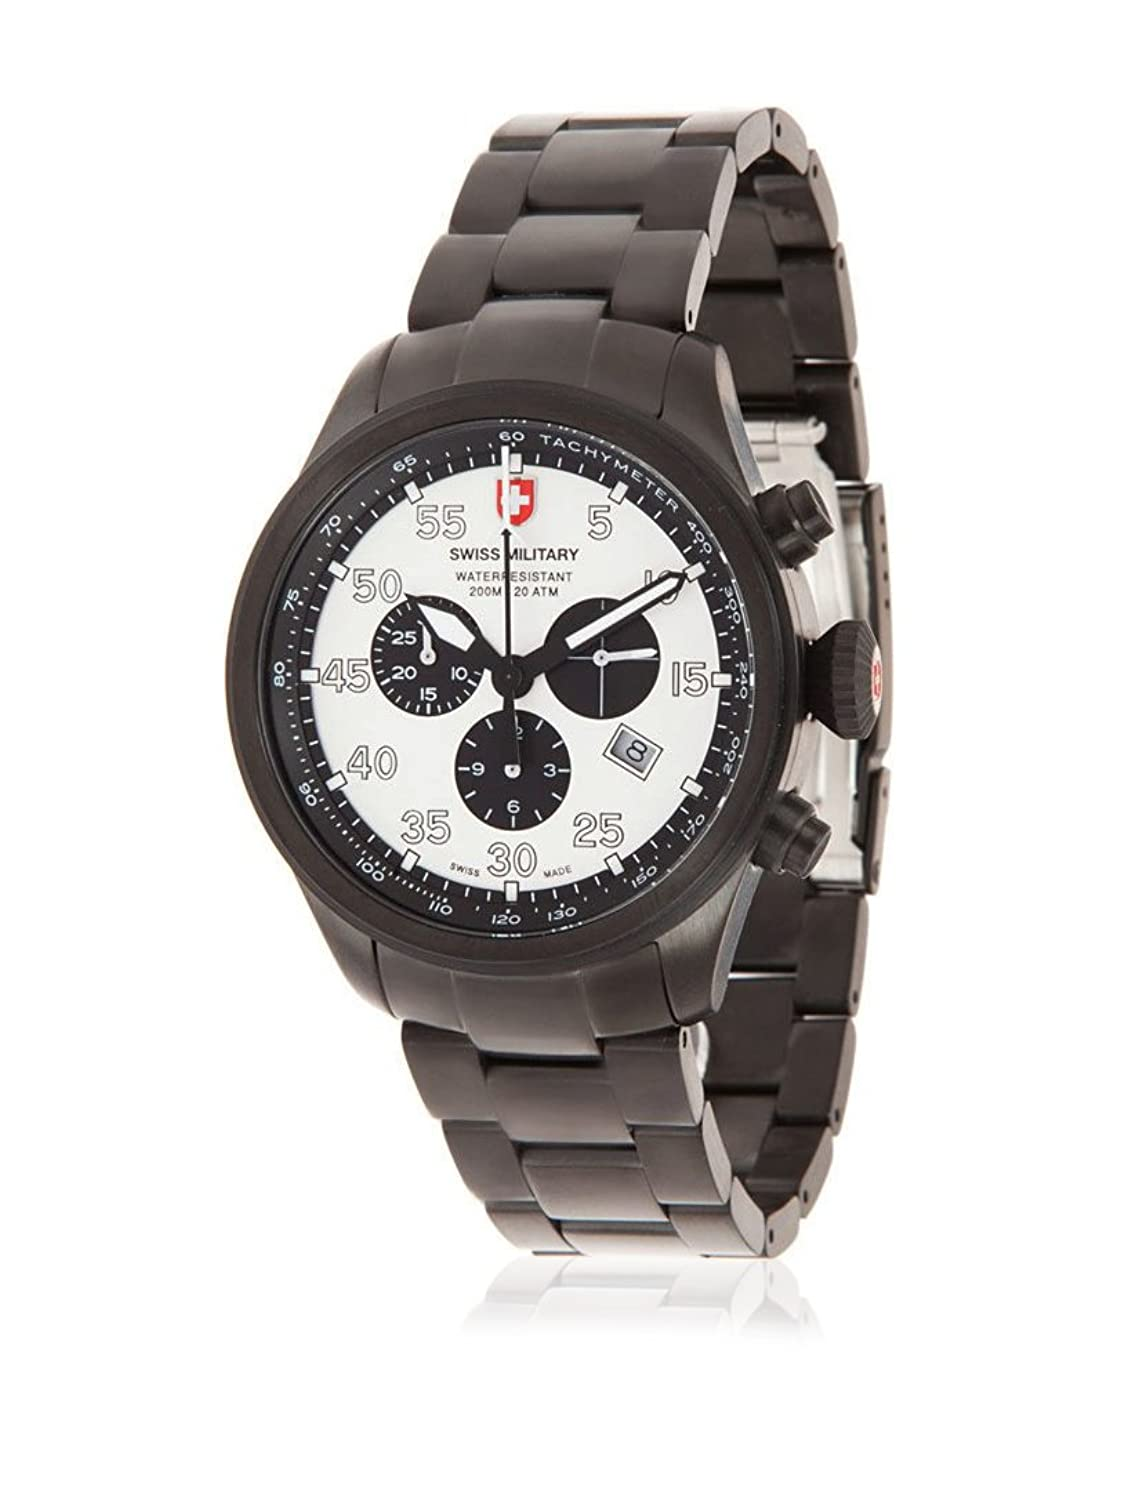 CX Swiss Military Watch Hawk Nero Chronograph 2730